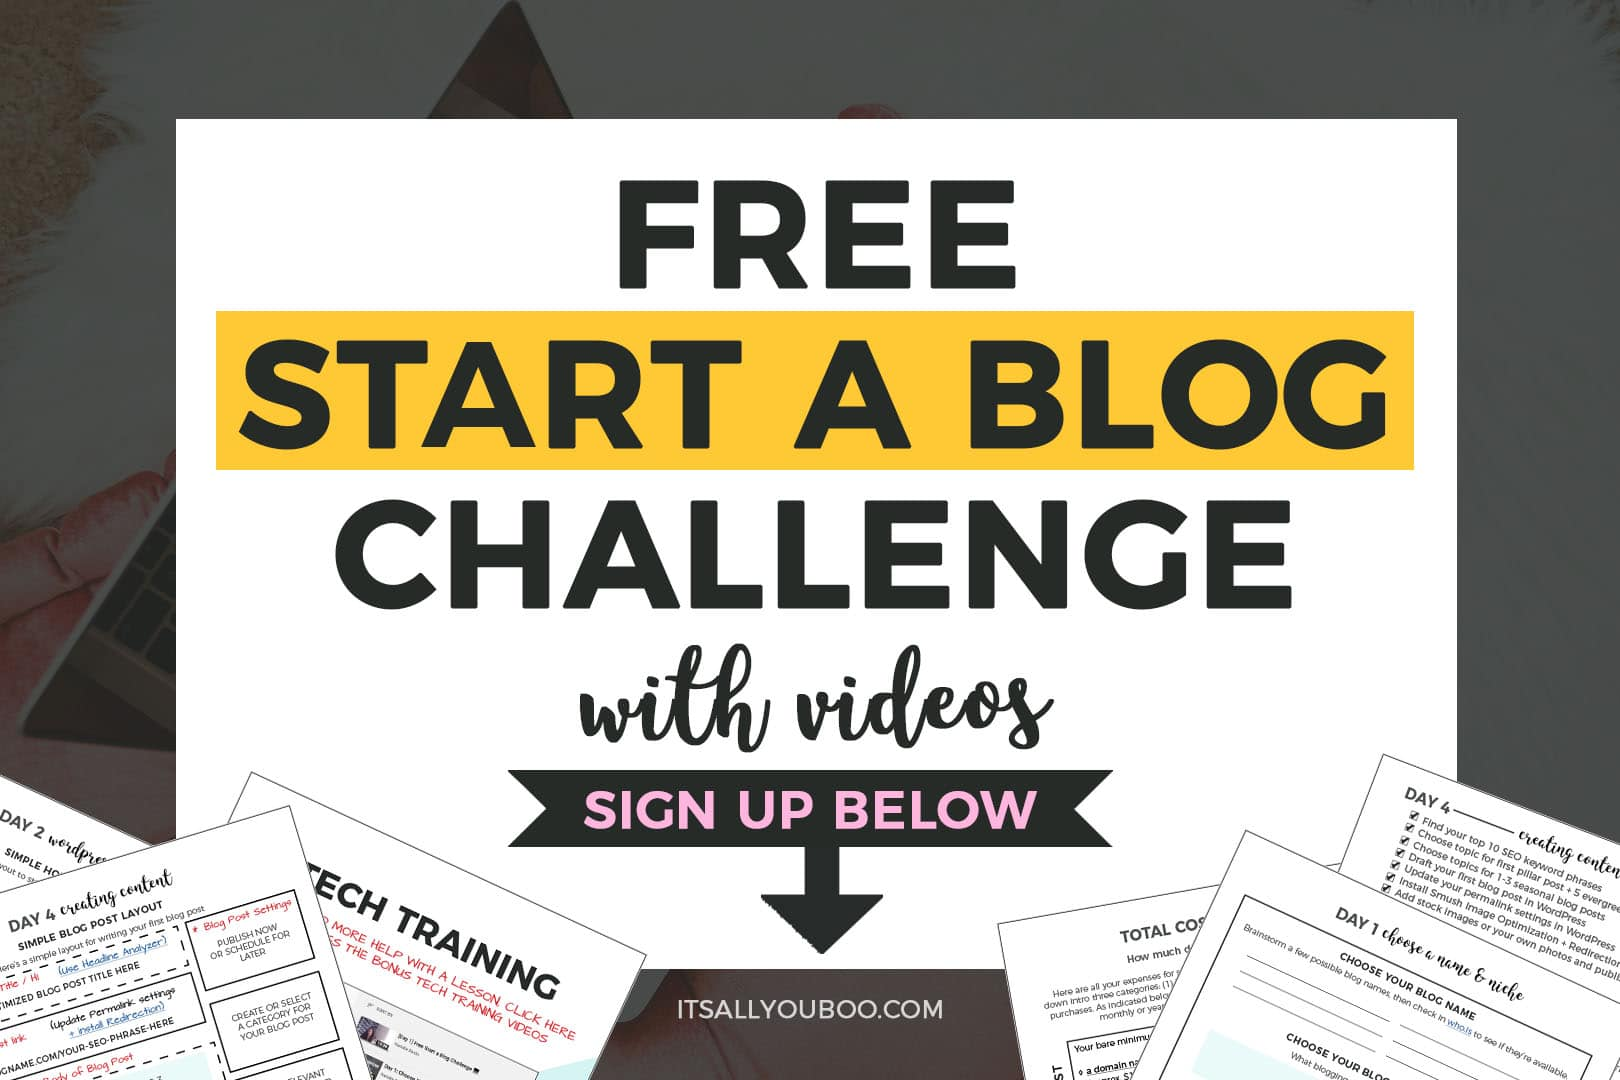 Sign up for FREE Start a Blog Challenge